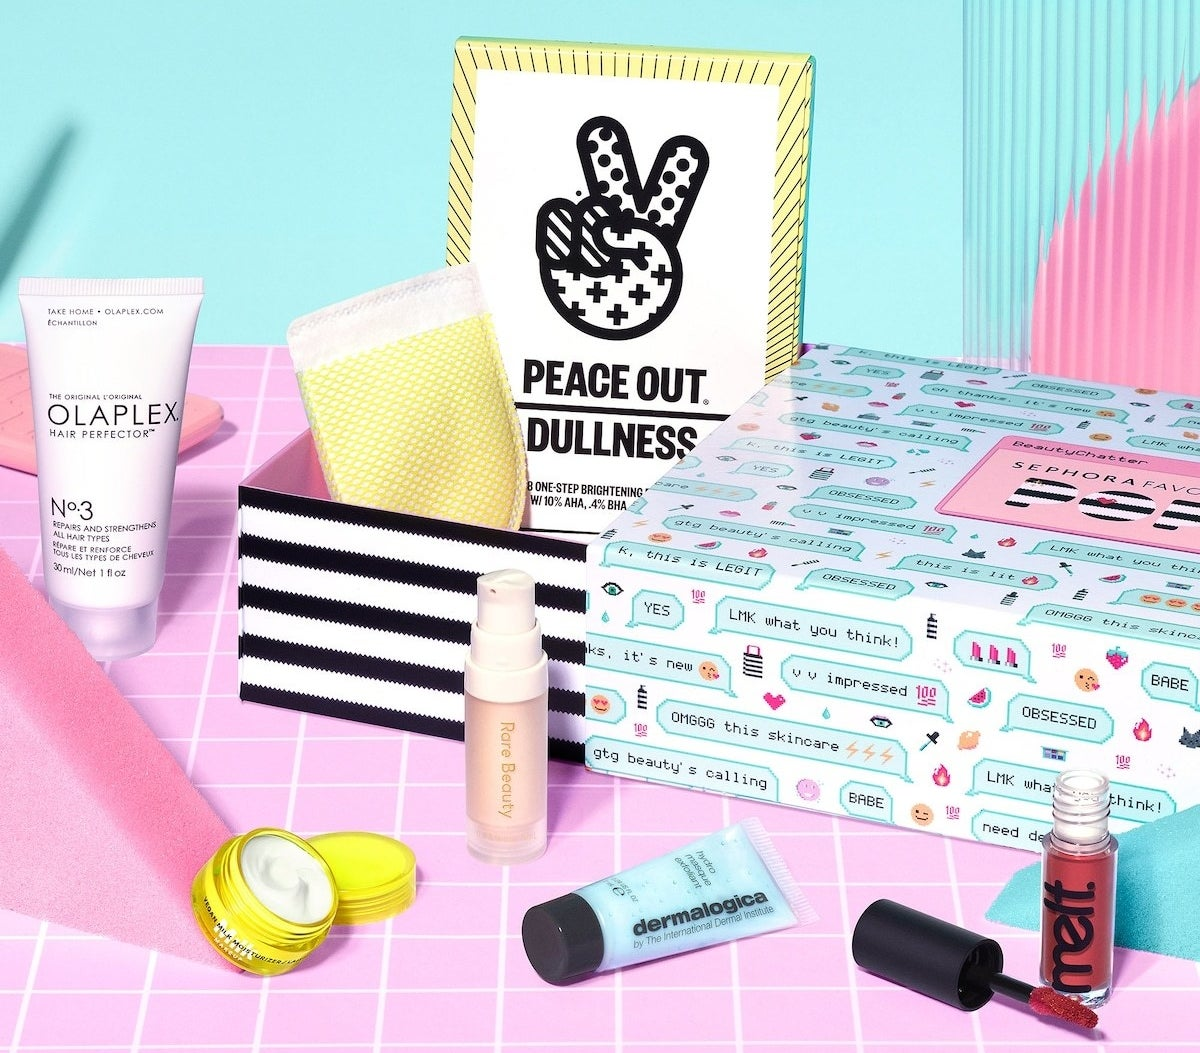 the various products that come in the gift set